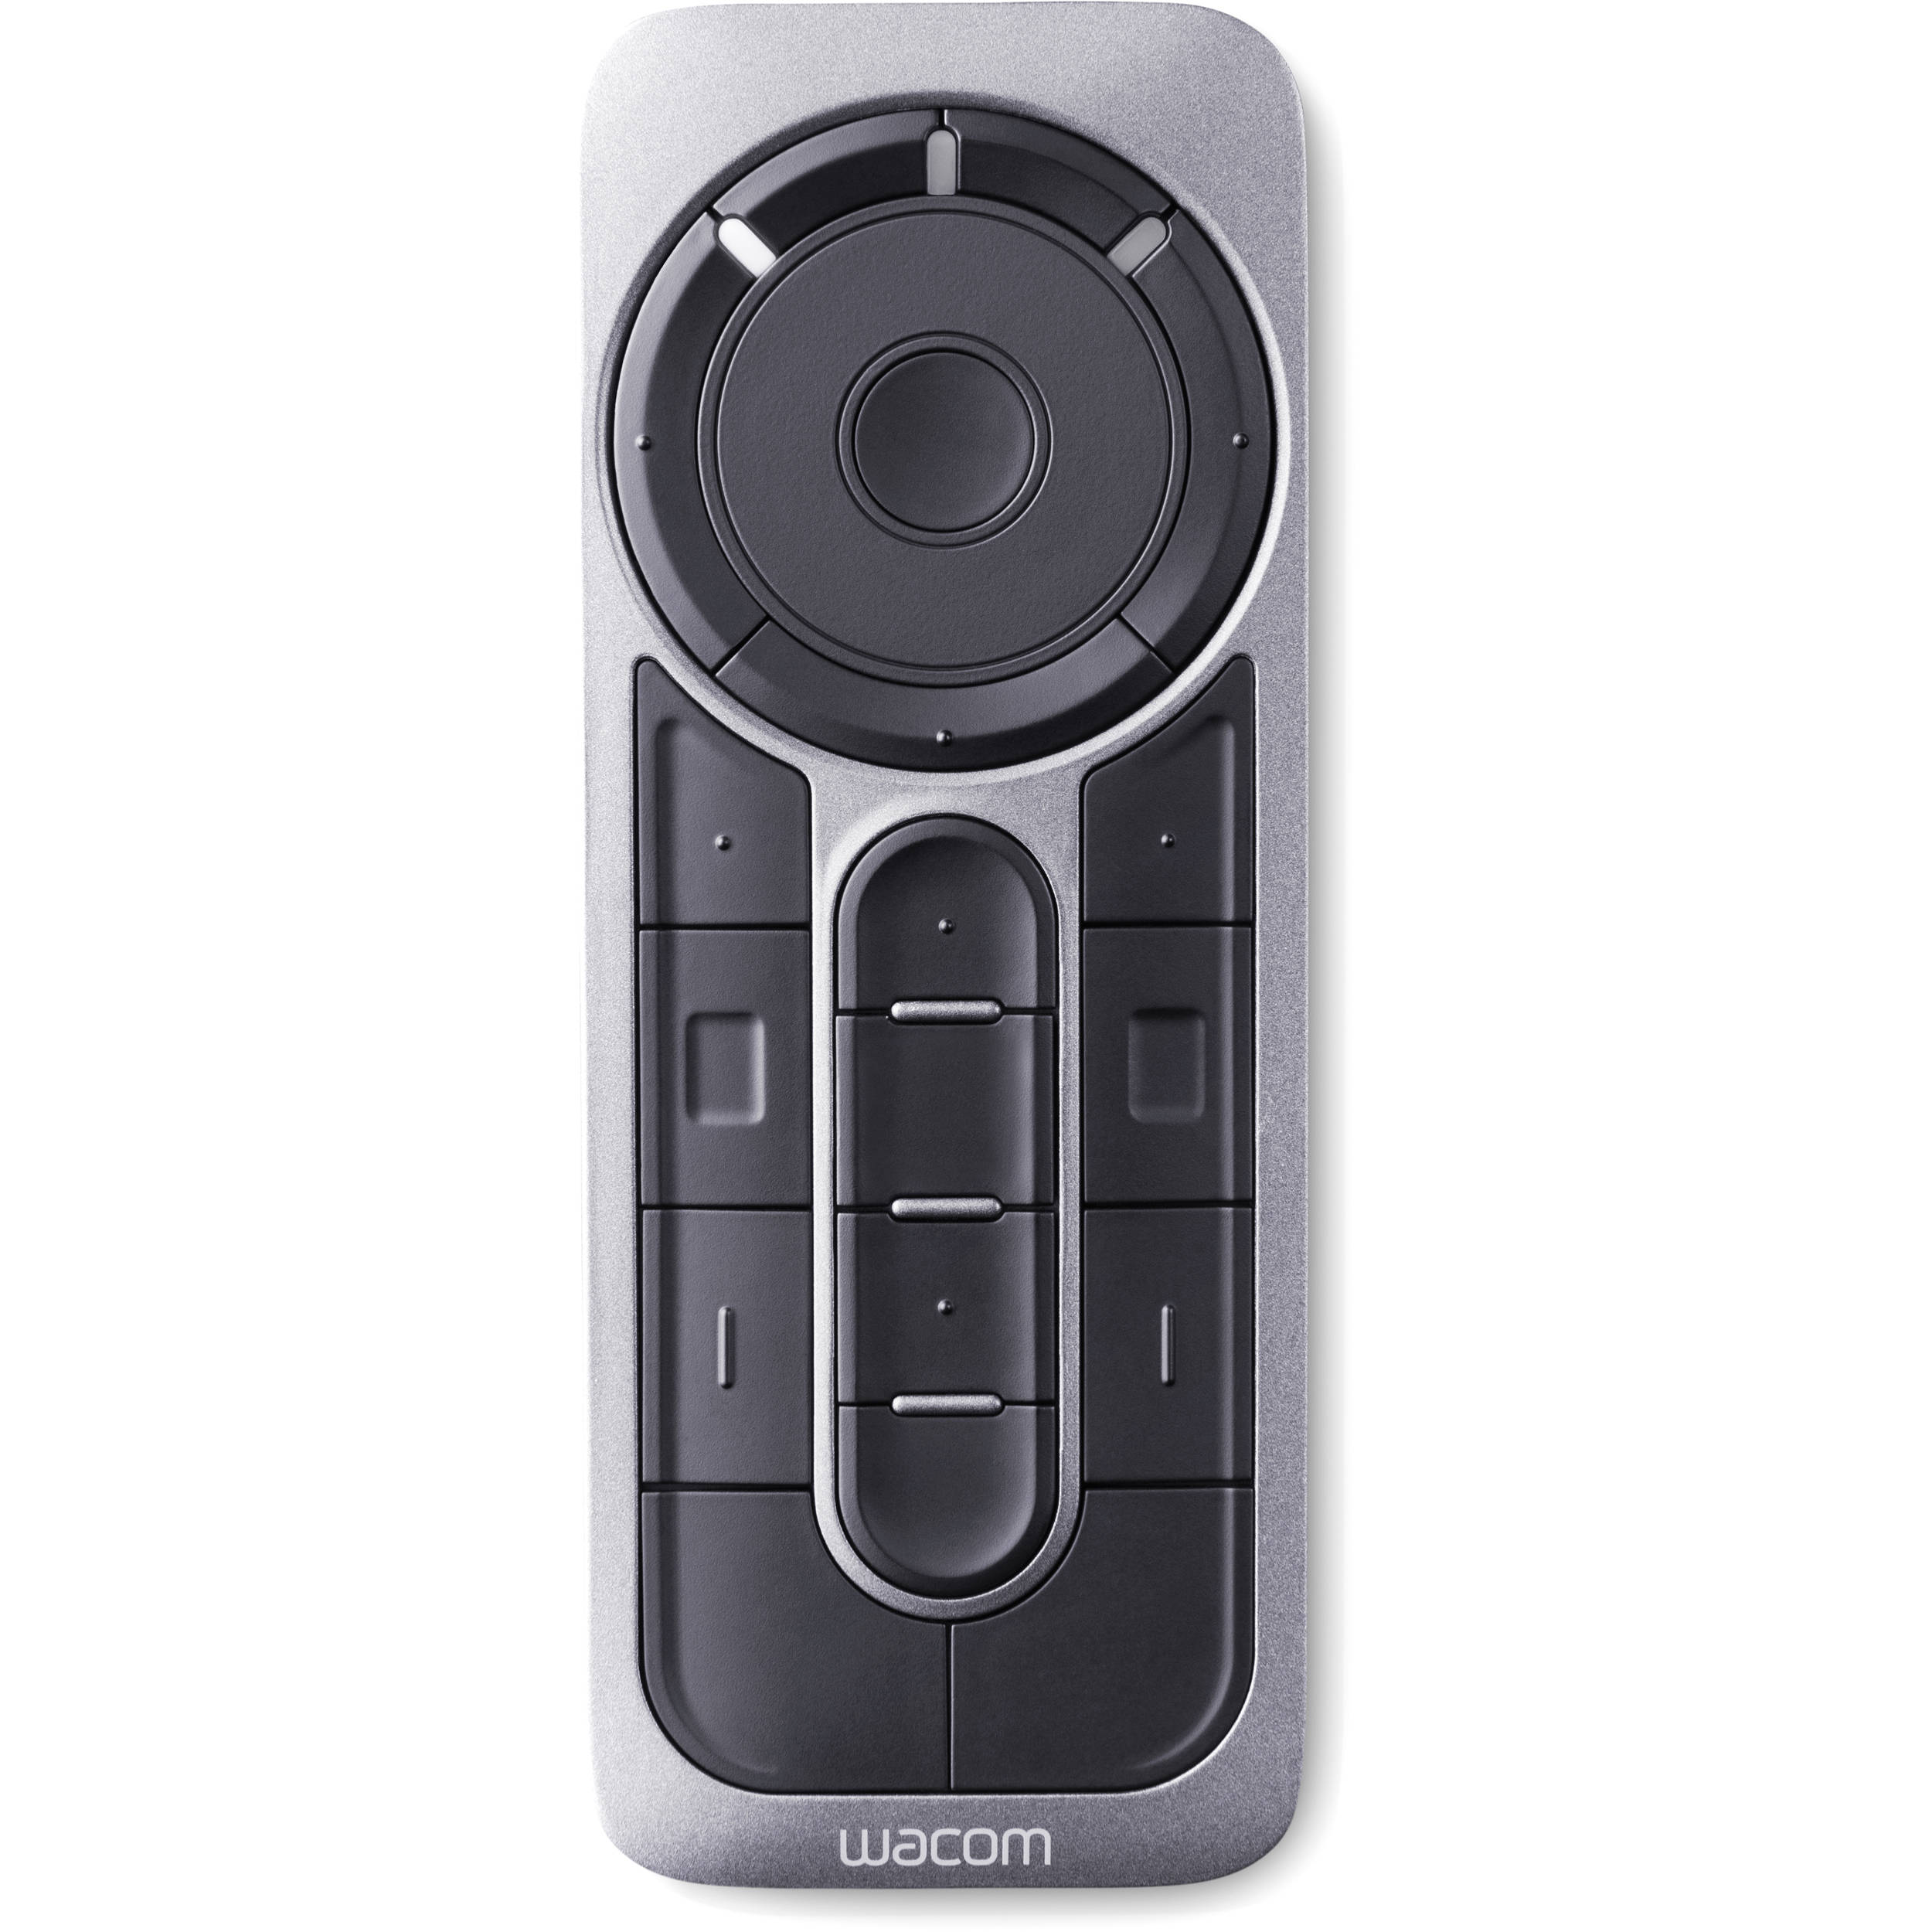 Wacom Express Key Remote for Intuos Pro and Cintiq (ACK411050) by Wacom